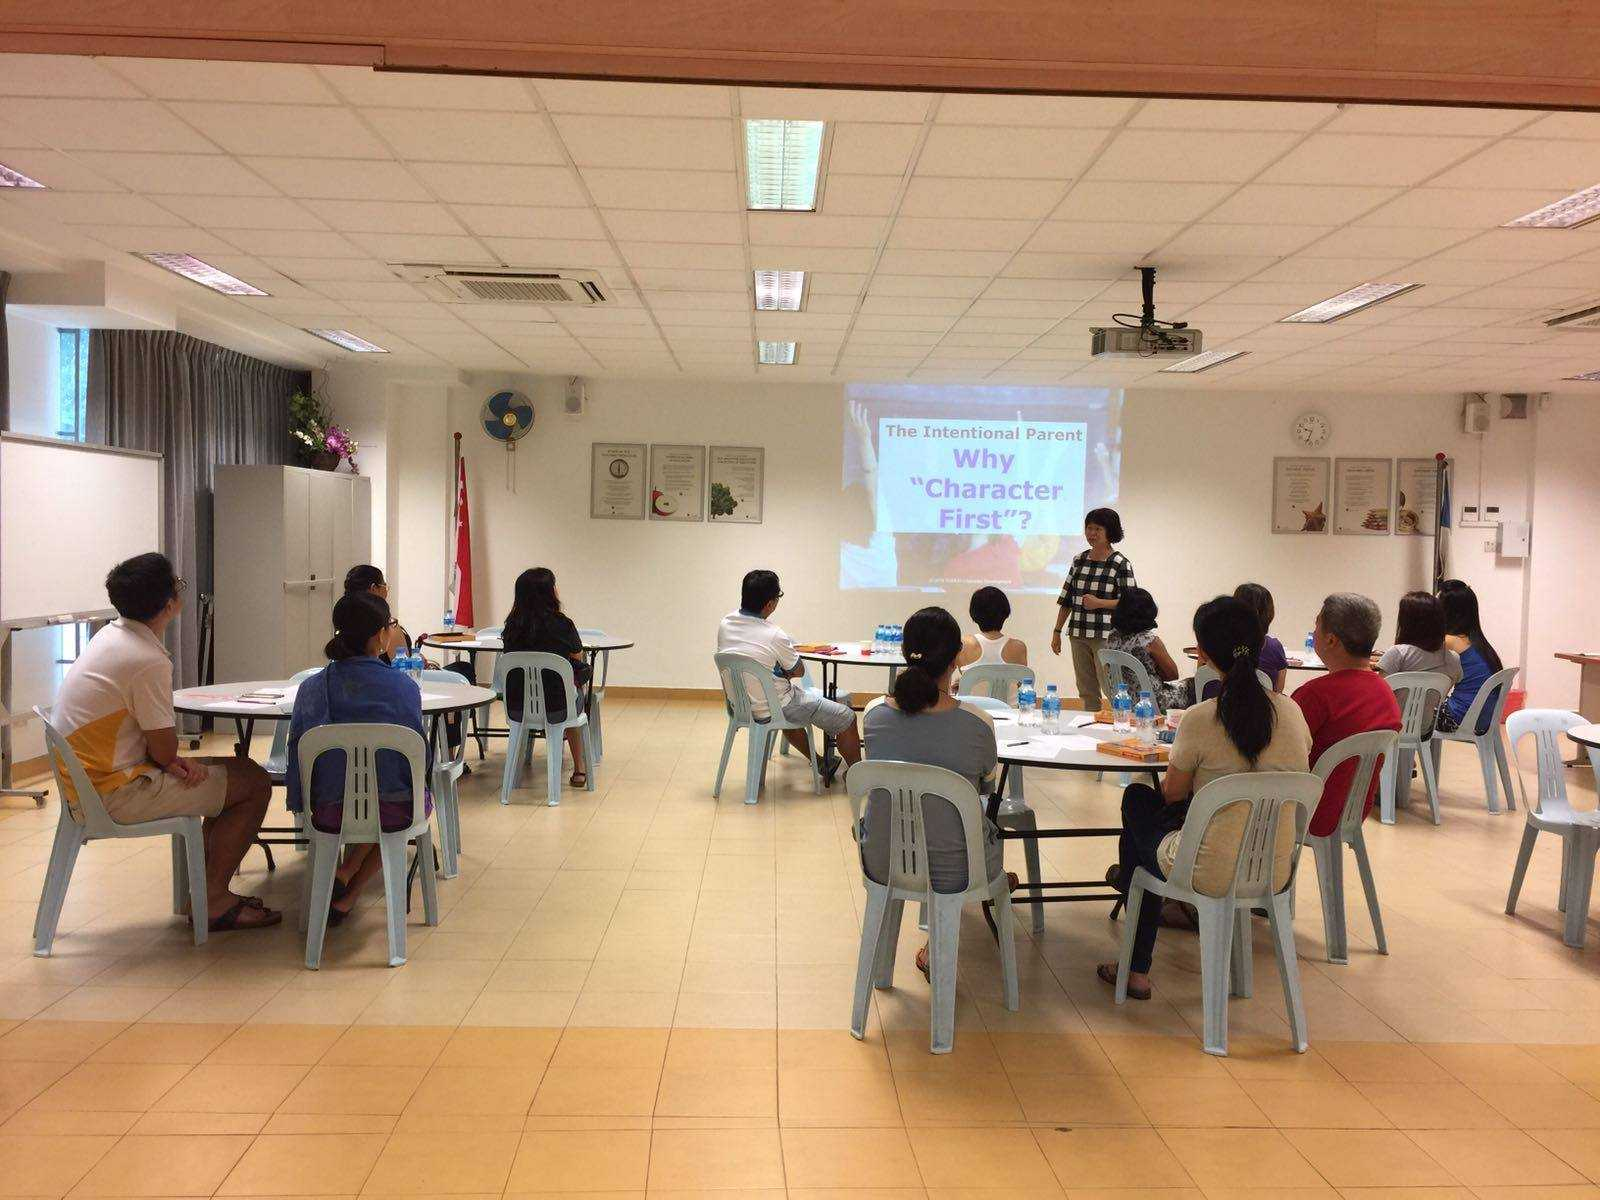 A talk on 'The Intentional Parent' was conducted for parents